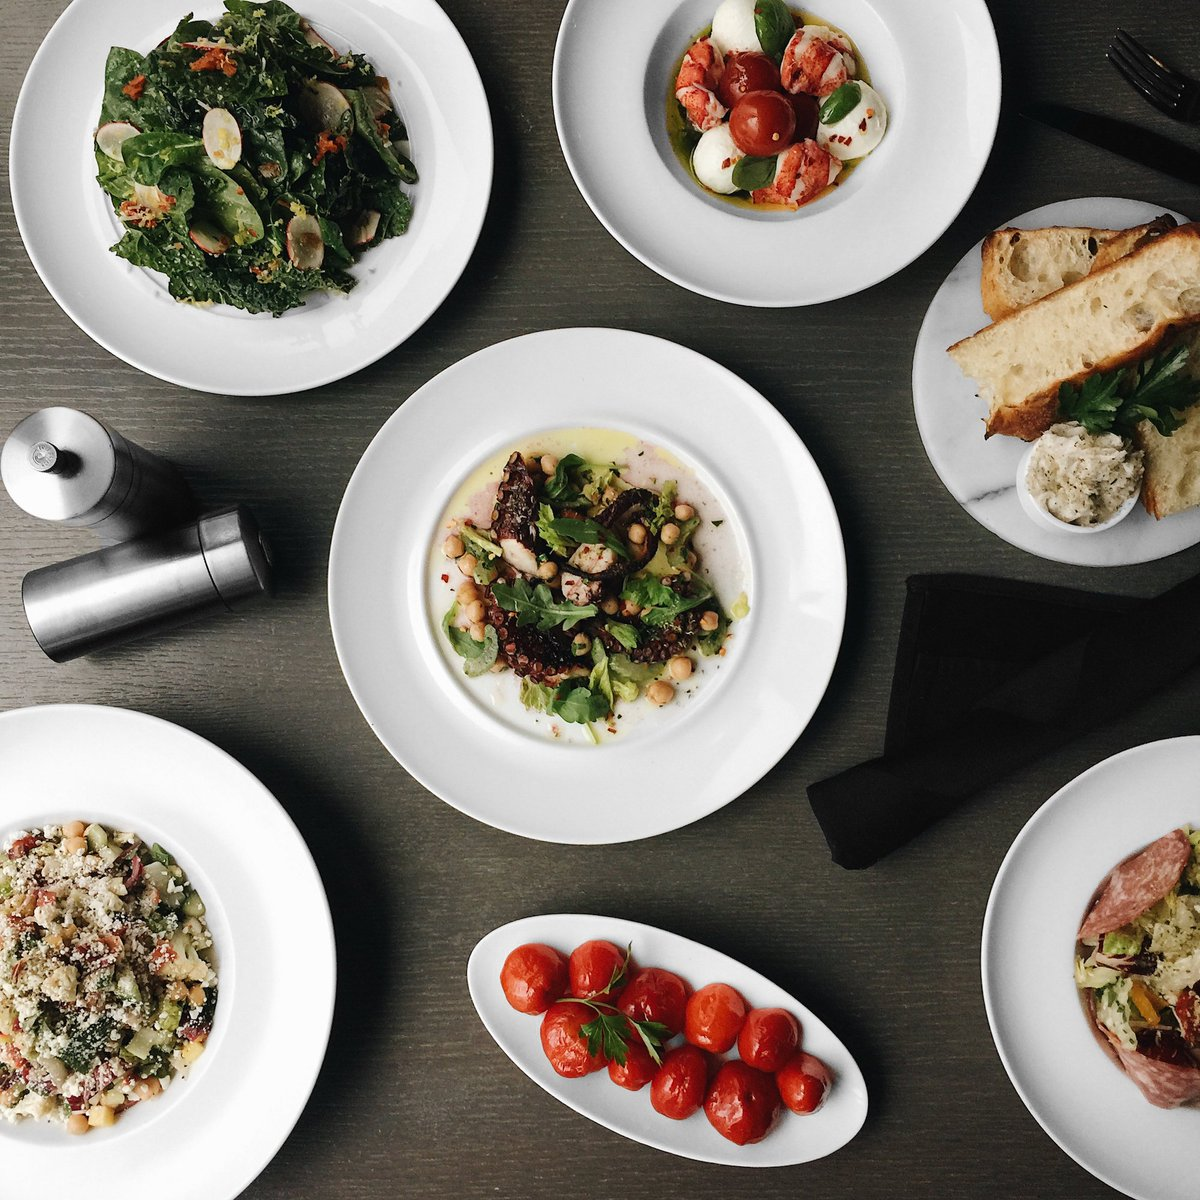 The recommended way to begin your meal at RPM? Share one of everything from our variety of antipasti. Signatures include Tuscan Kale & Spinach Salad, Lobster Caprese, Wood-Roasted Octopus, Provolone-Stuffed Peppers and more. Reserve now: https://t.co/0ICCkD8nzl https://t.co/Vykl8Z3ptr